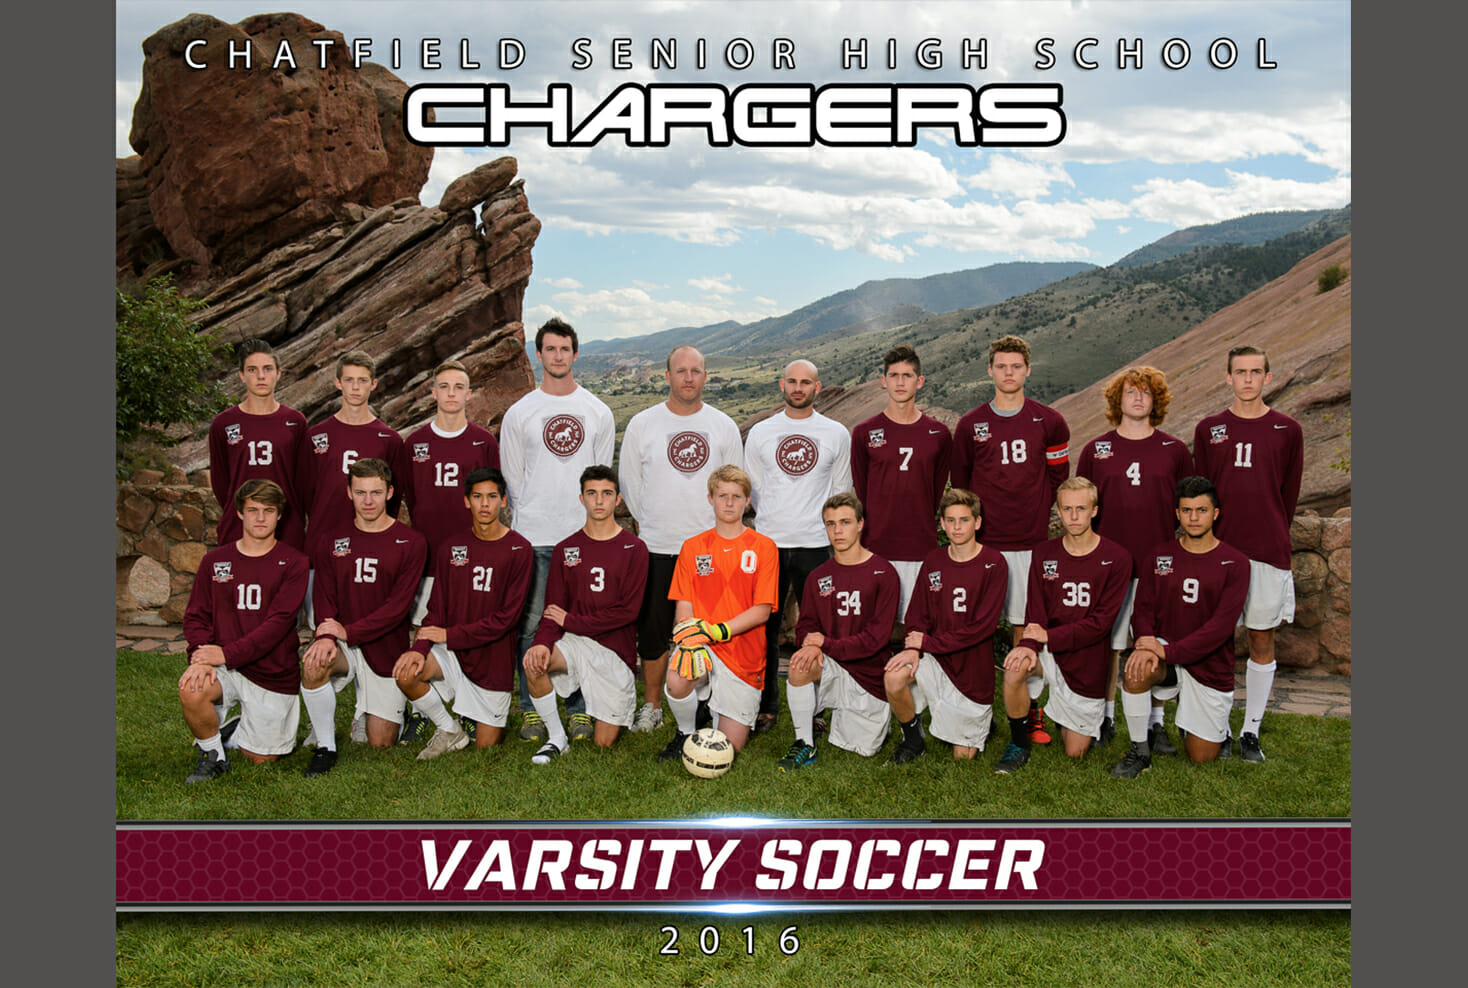 Chatfield High School varsity soccer team photo